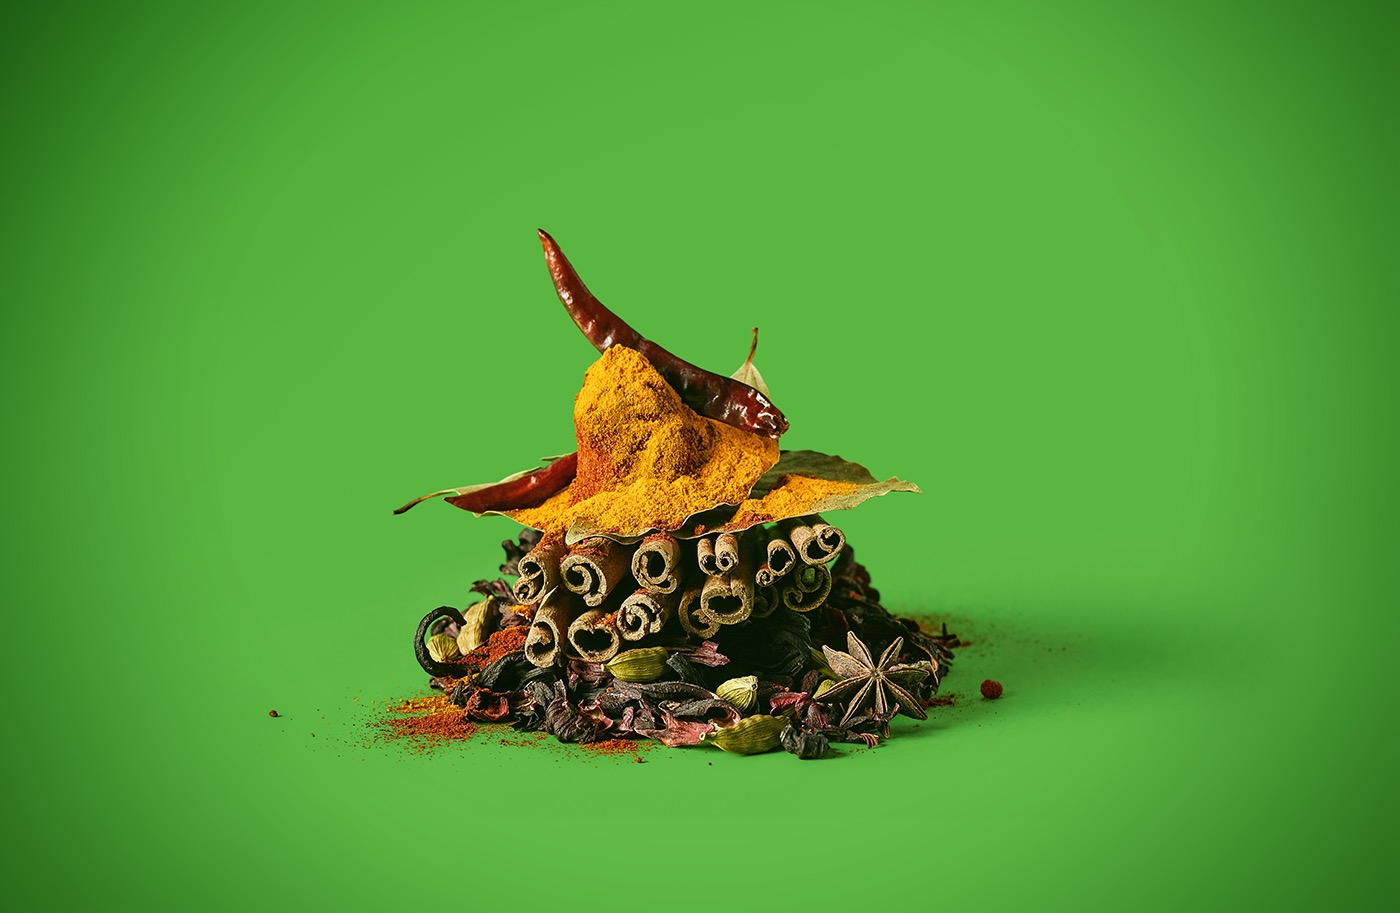 Food Photography & Retouching Ideas For Inspiration (4)